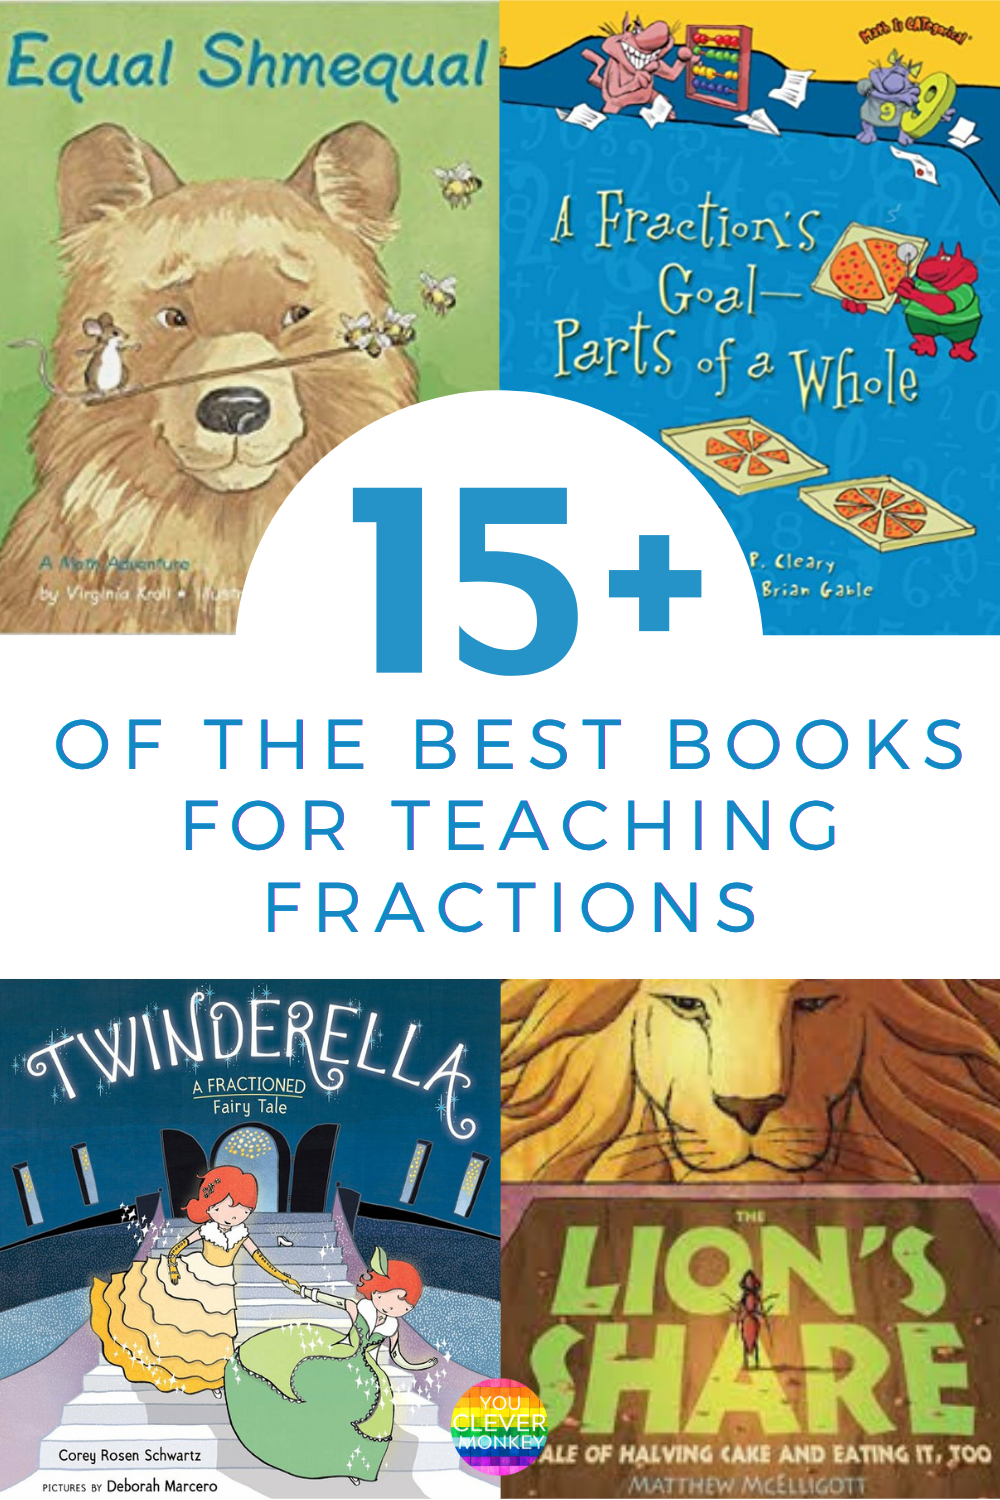 15+ OF THE BEST BOOKS FOR TEACHING FRACTIONS - a handy  list of picture books perfect for teaching fractions in Kindergarten and First Grade